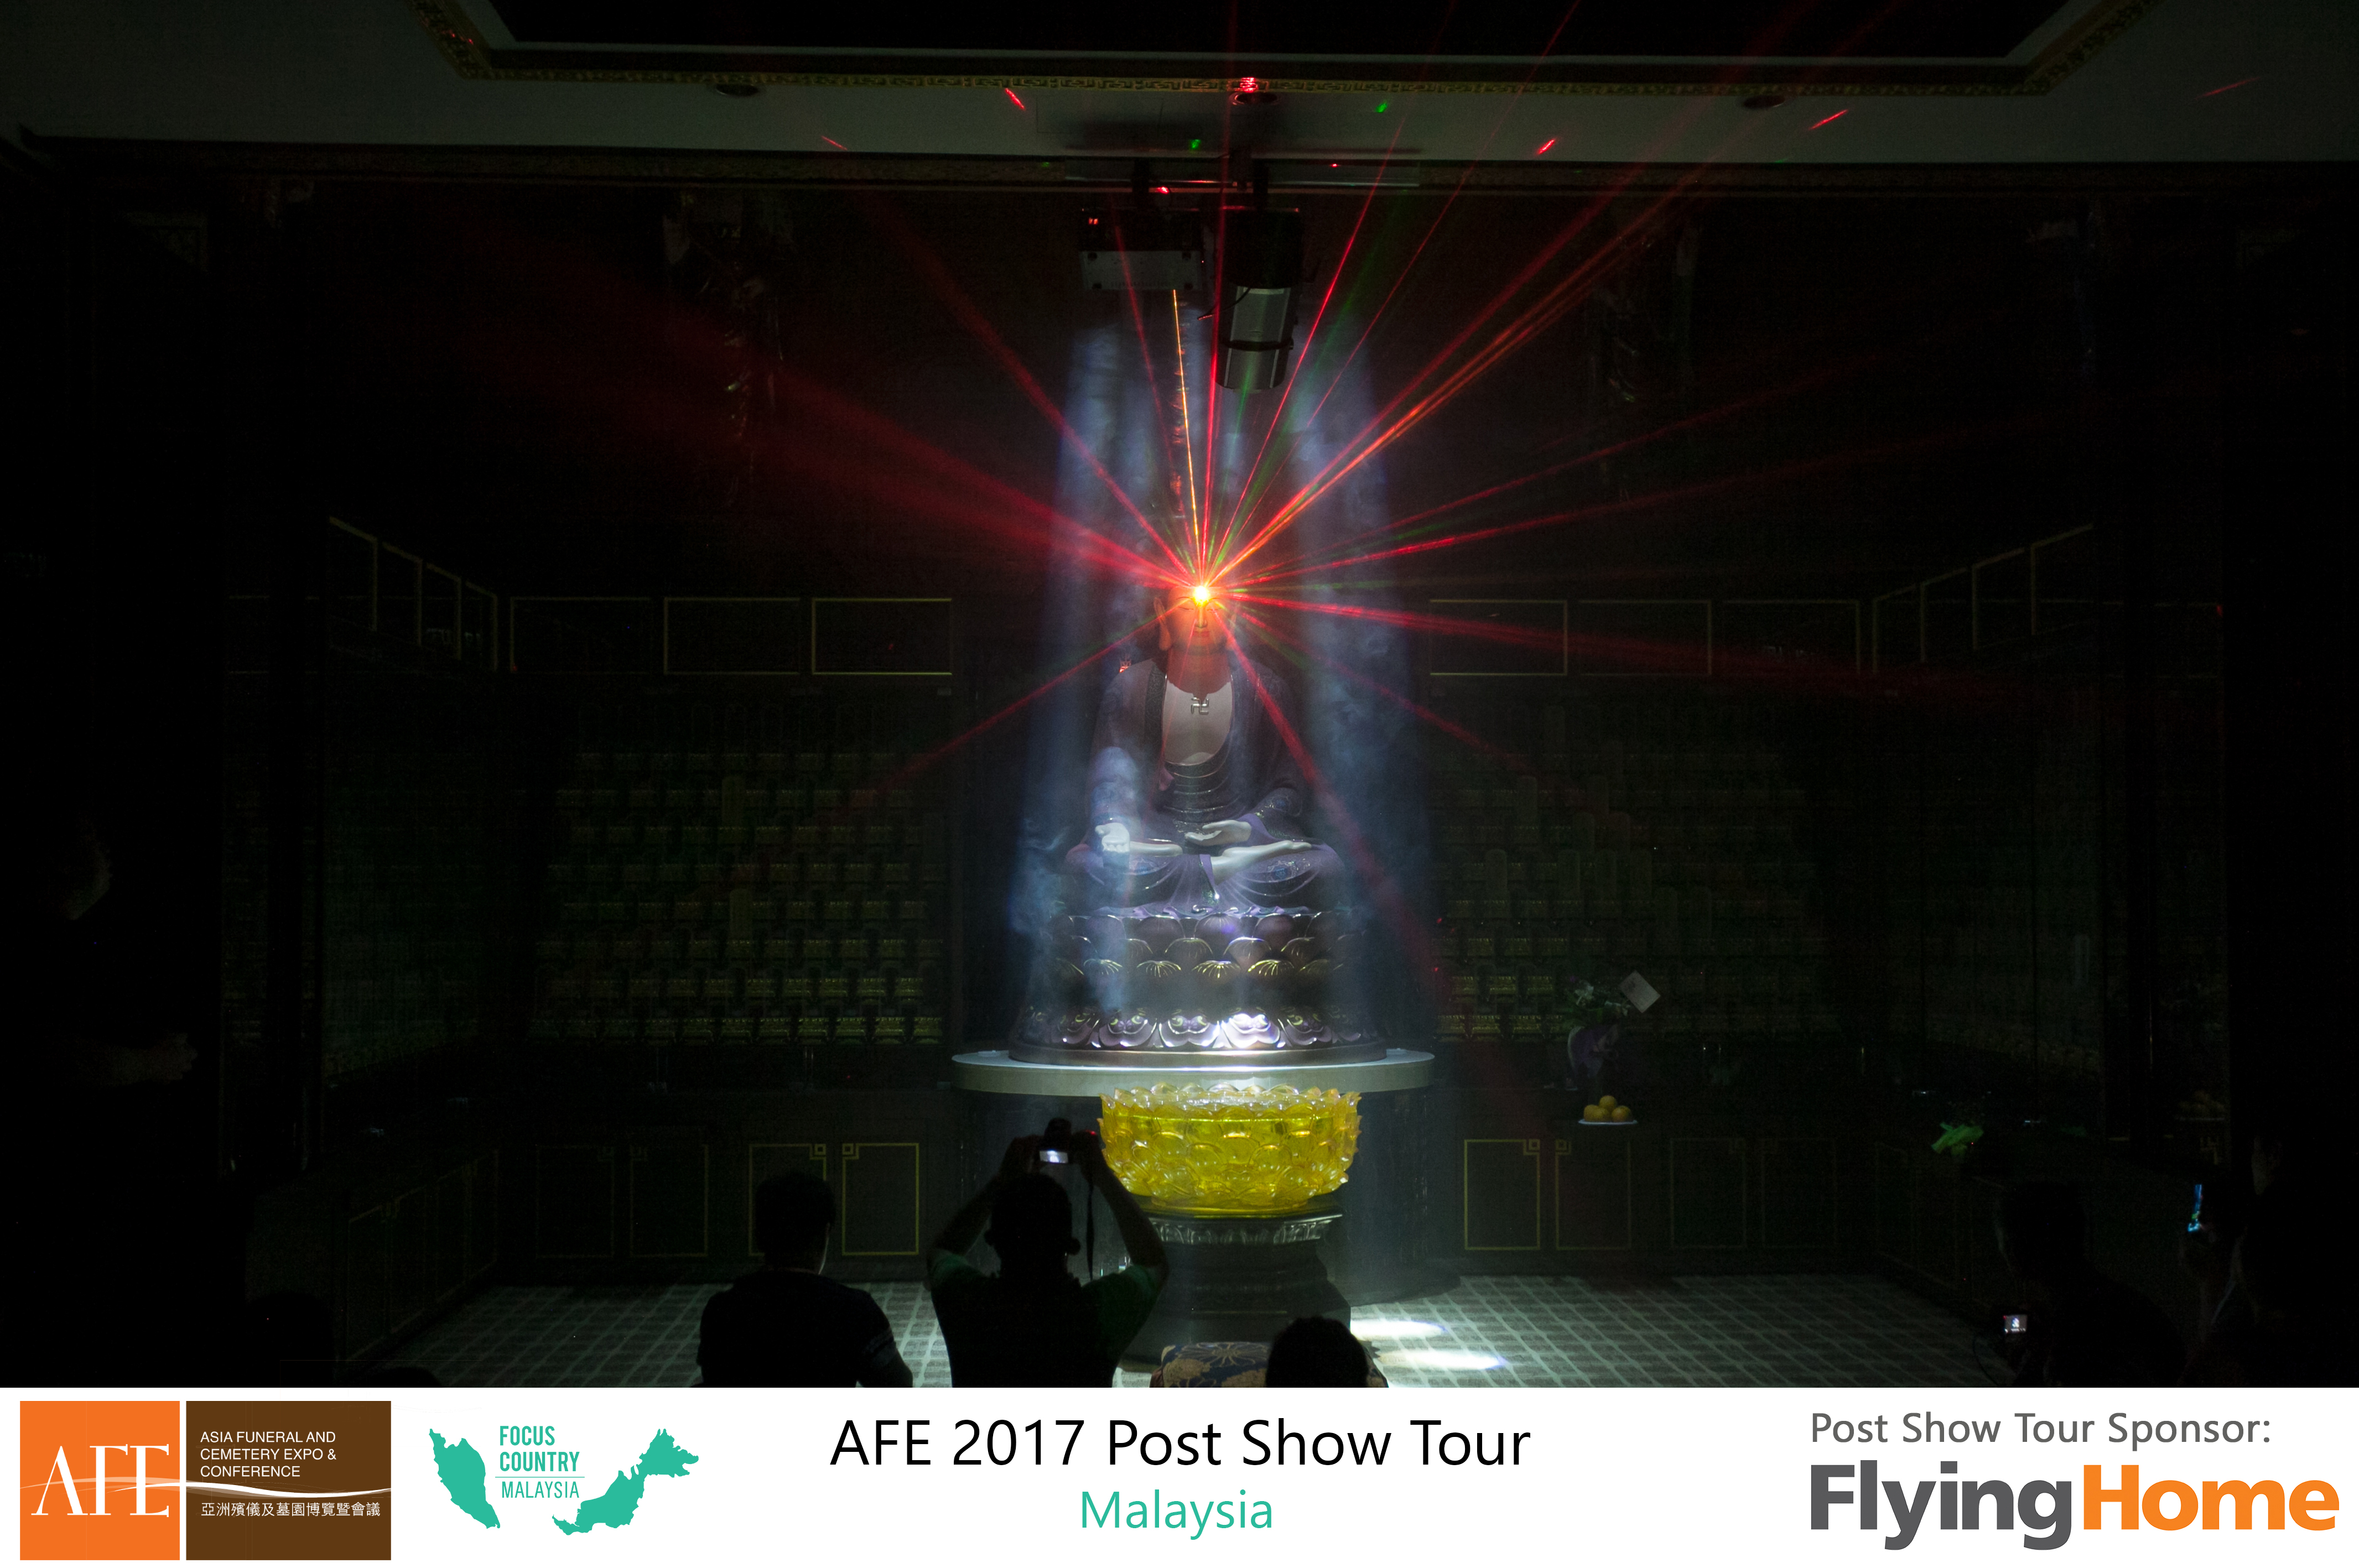 AFE Post Show Tour 2017 Day 2 - 24